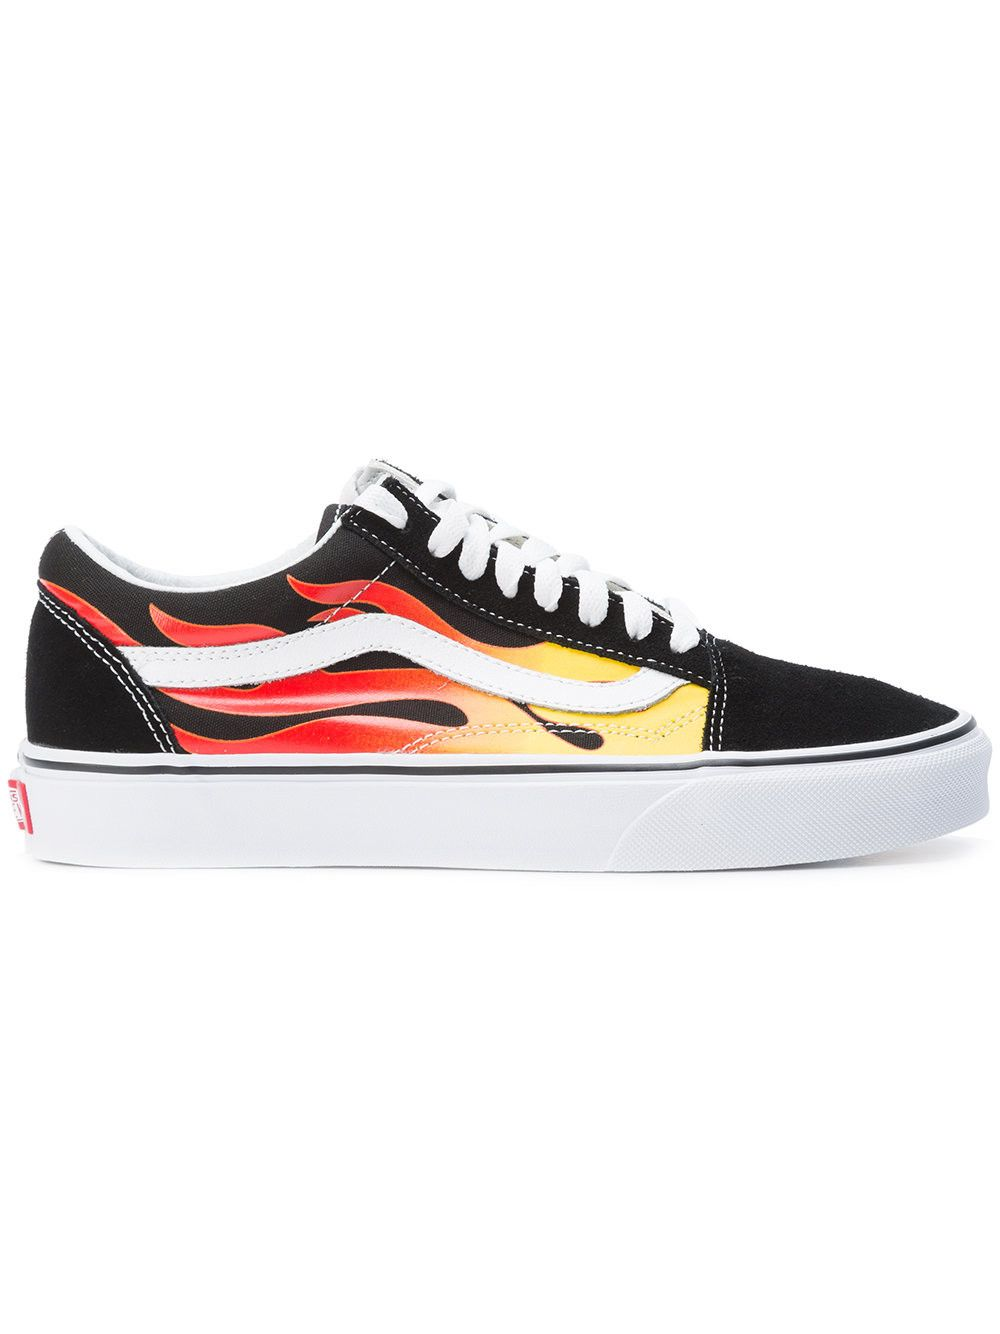 Fire Low Vans Streak Top Sneakersvansshoes Skool Old 4A5j3RLq